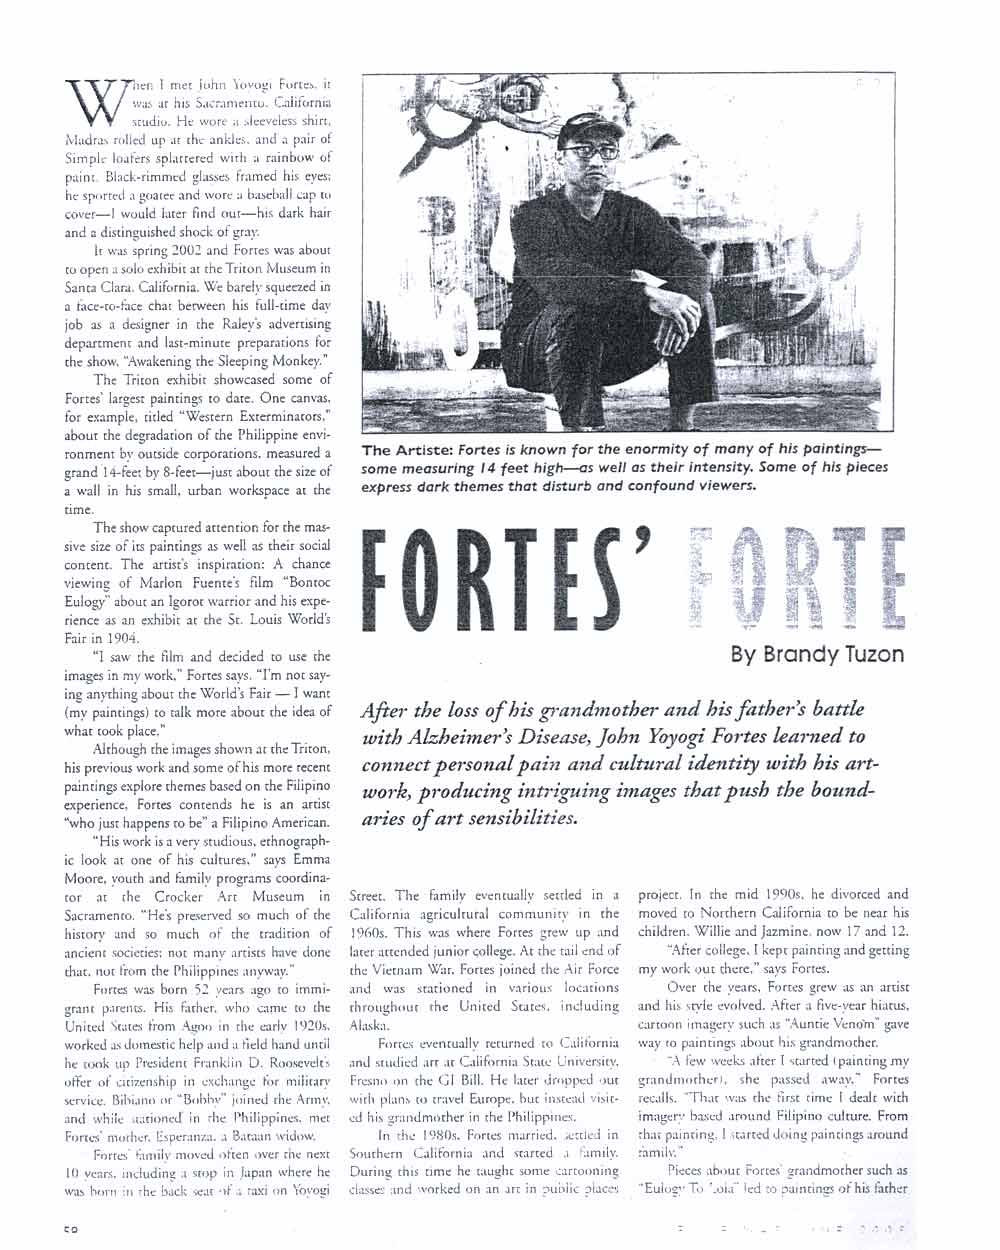 Fortes' Forte, article, pg 1